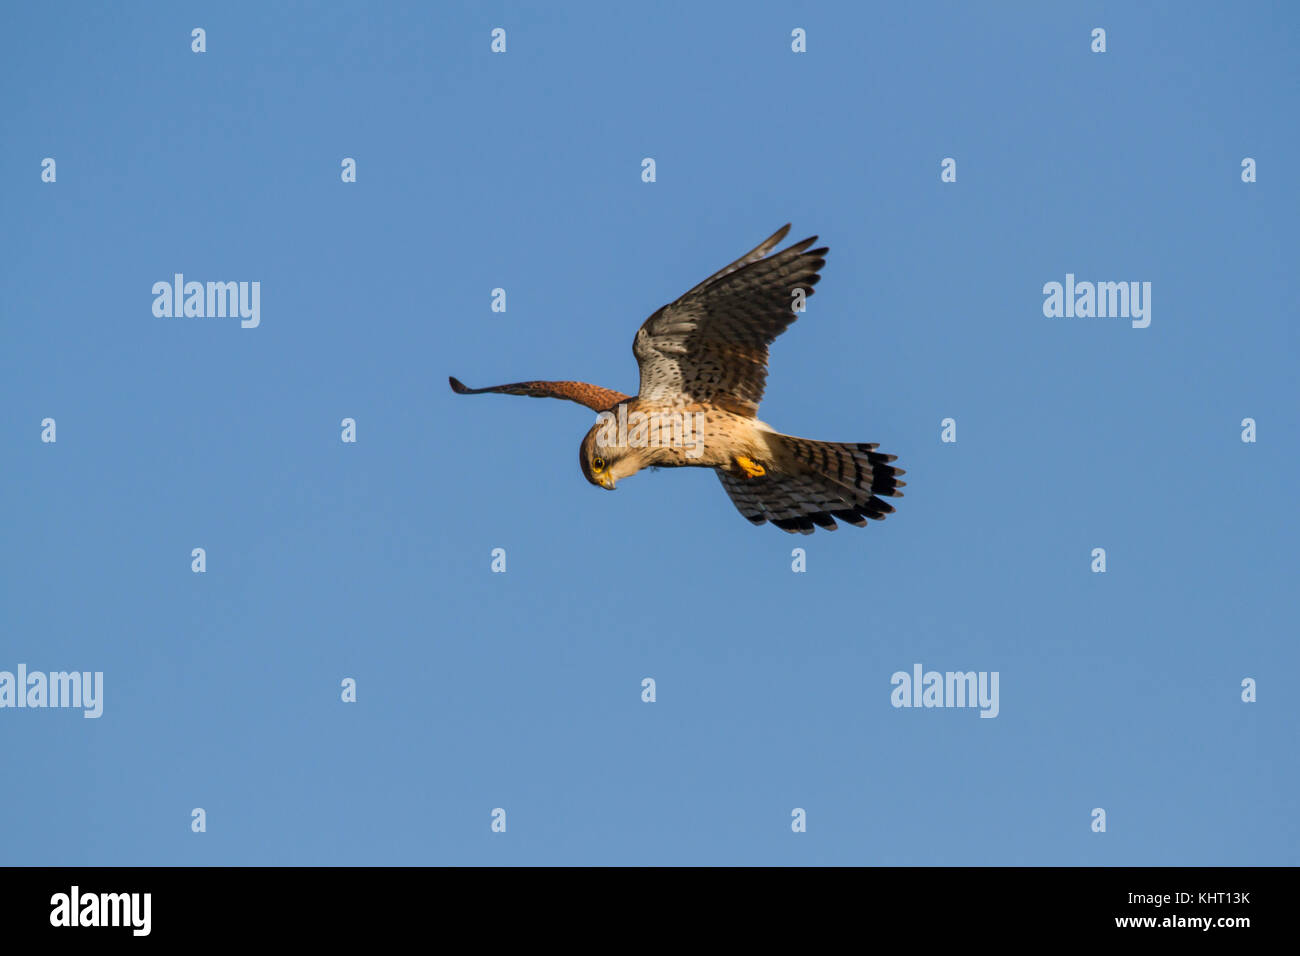 A female Common Kestrel (Falco tinnunculus) also known as just Kestrel hovering in search of prey. Stock Photo